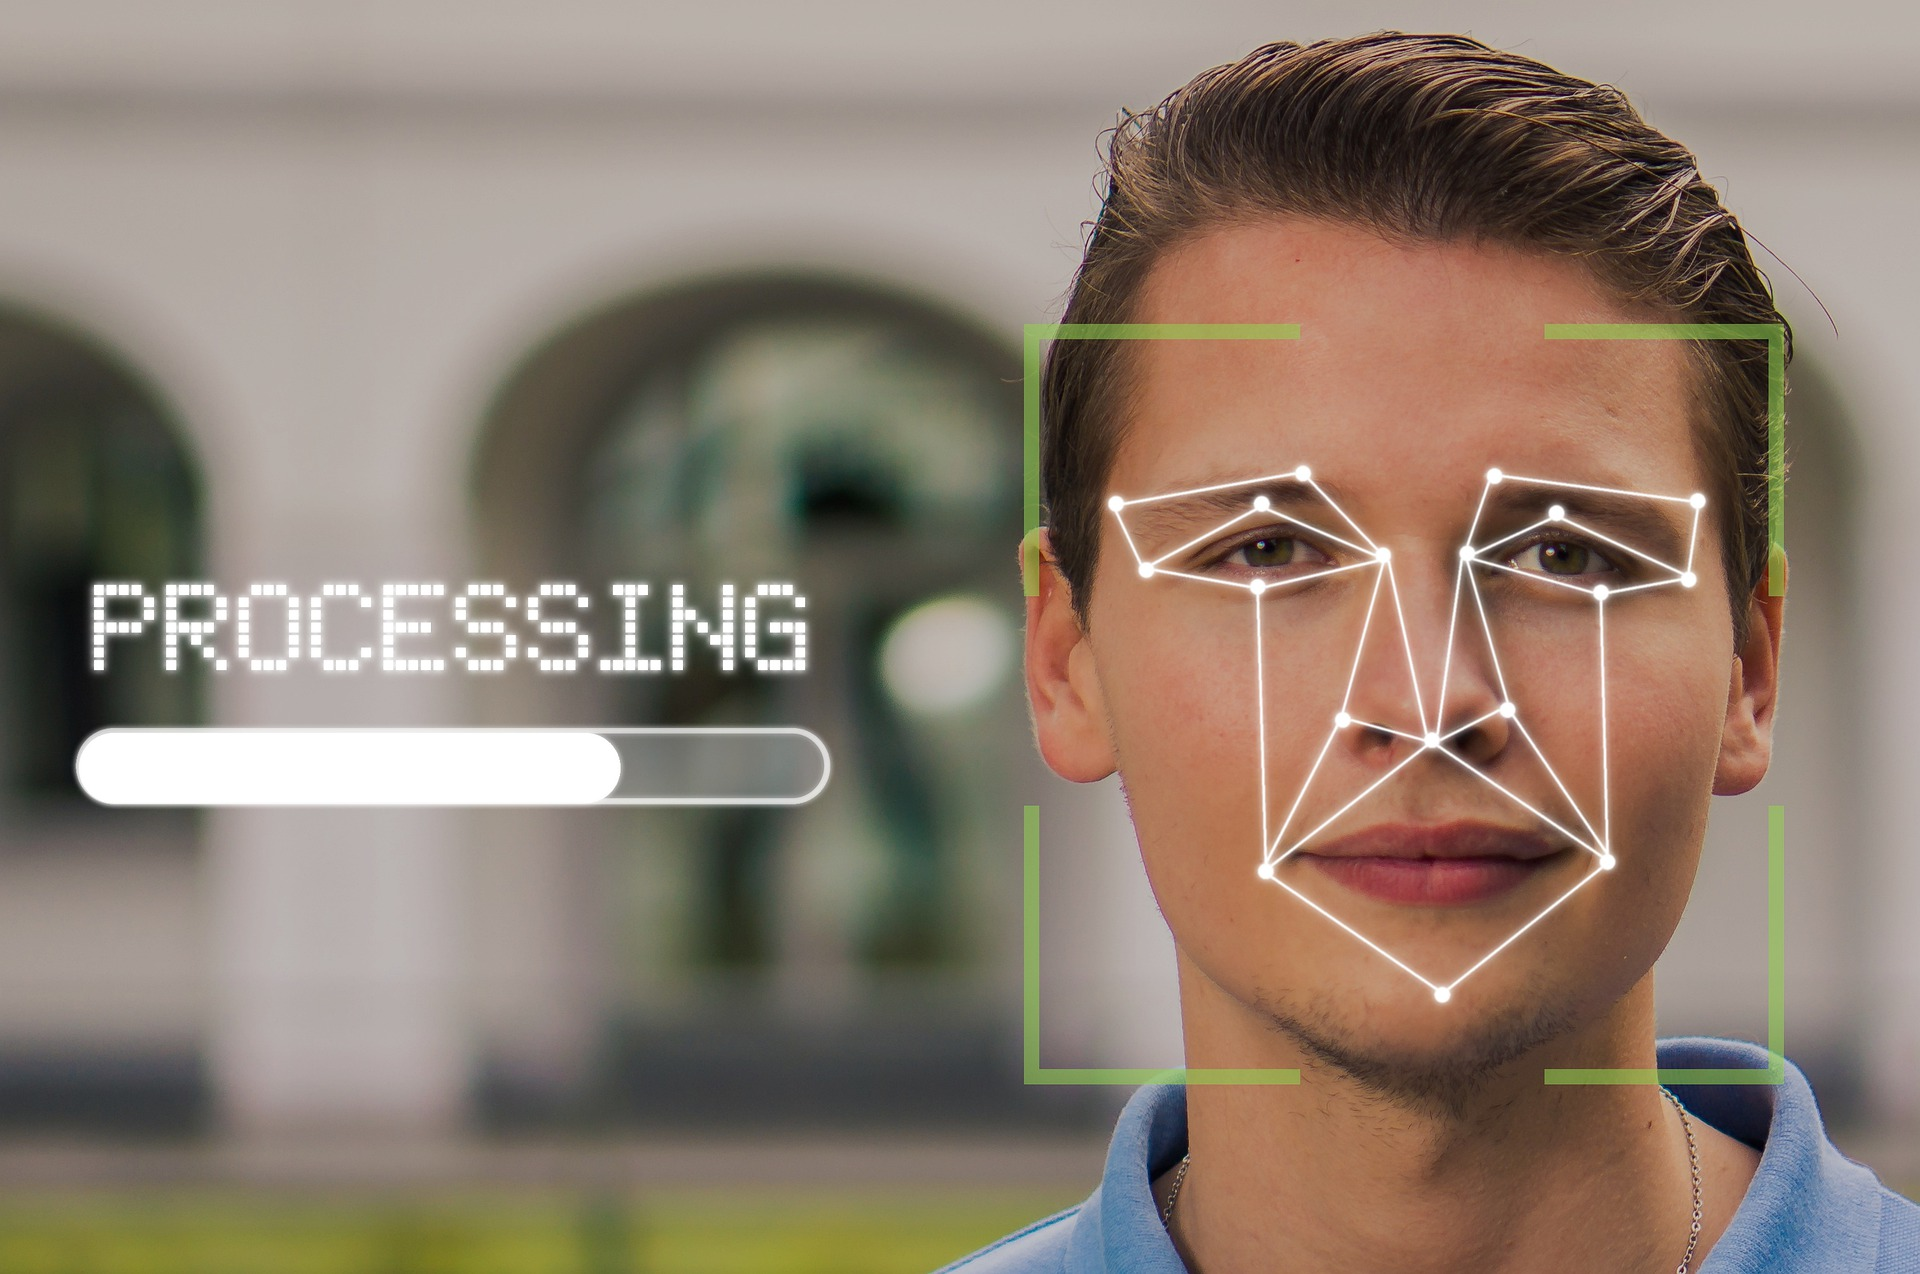 Bad Face Recognition